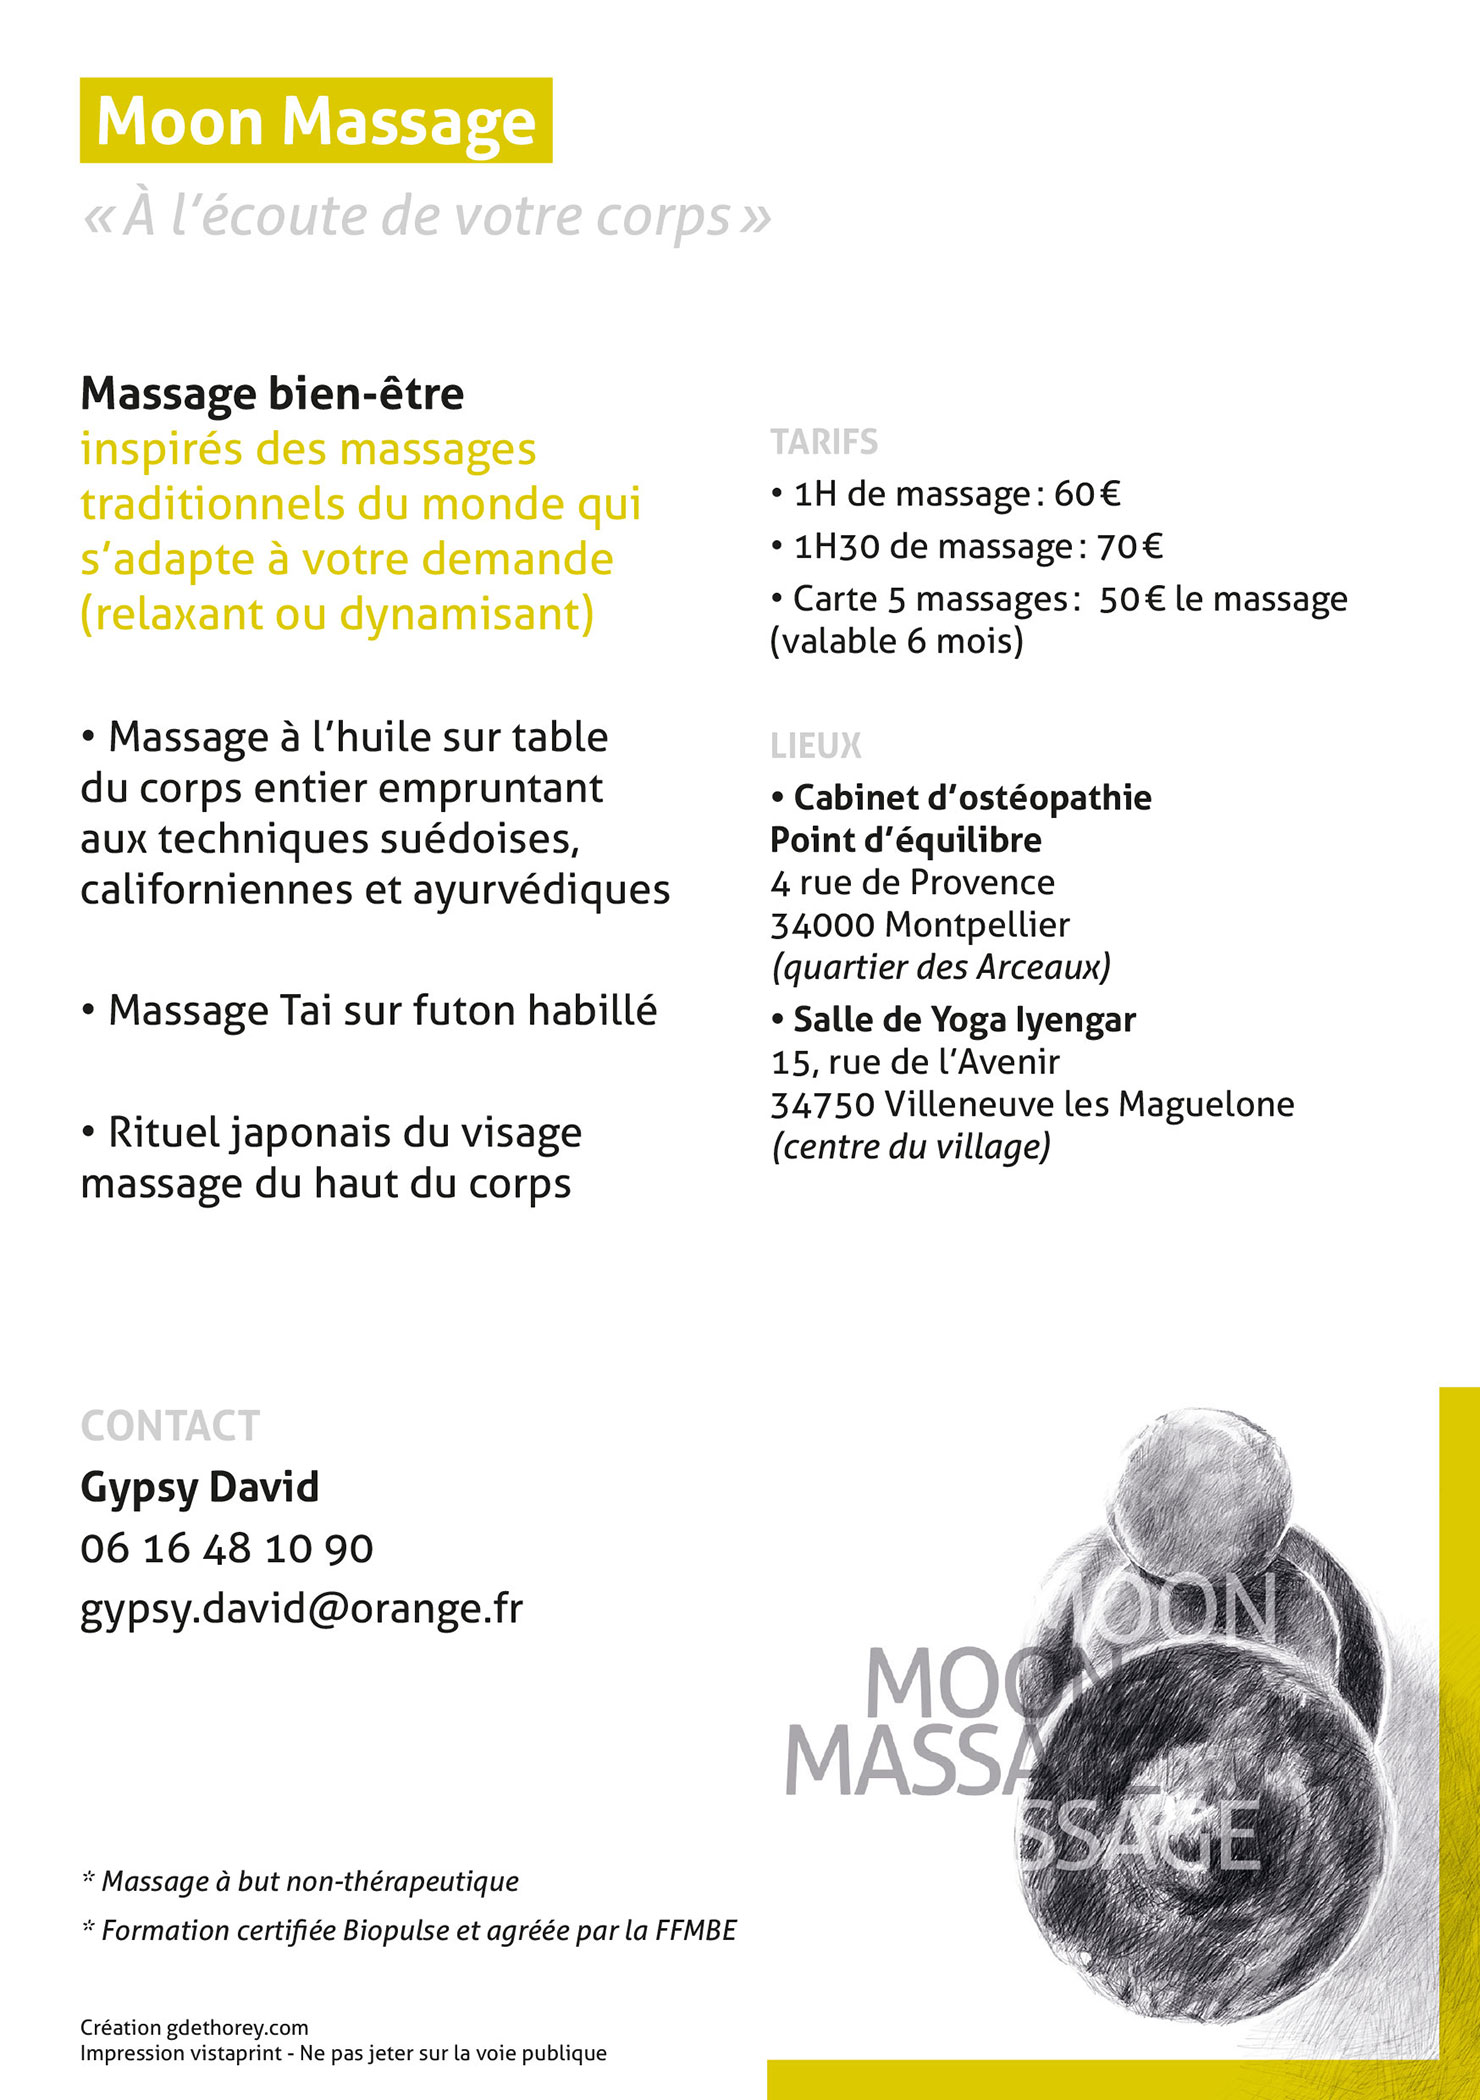 Mise en page d'un flyer pour Moon Massage